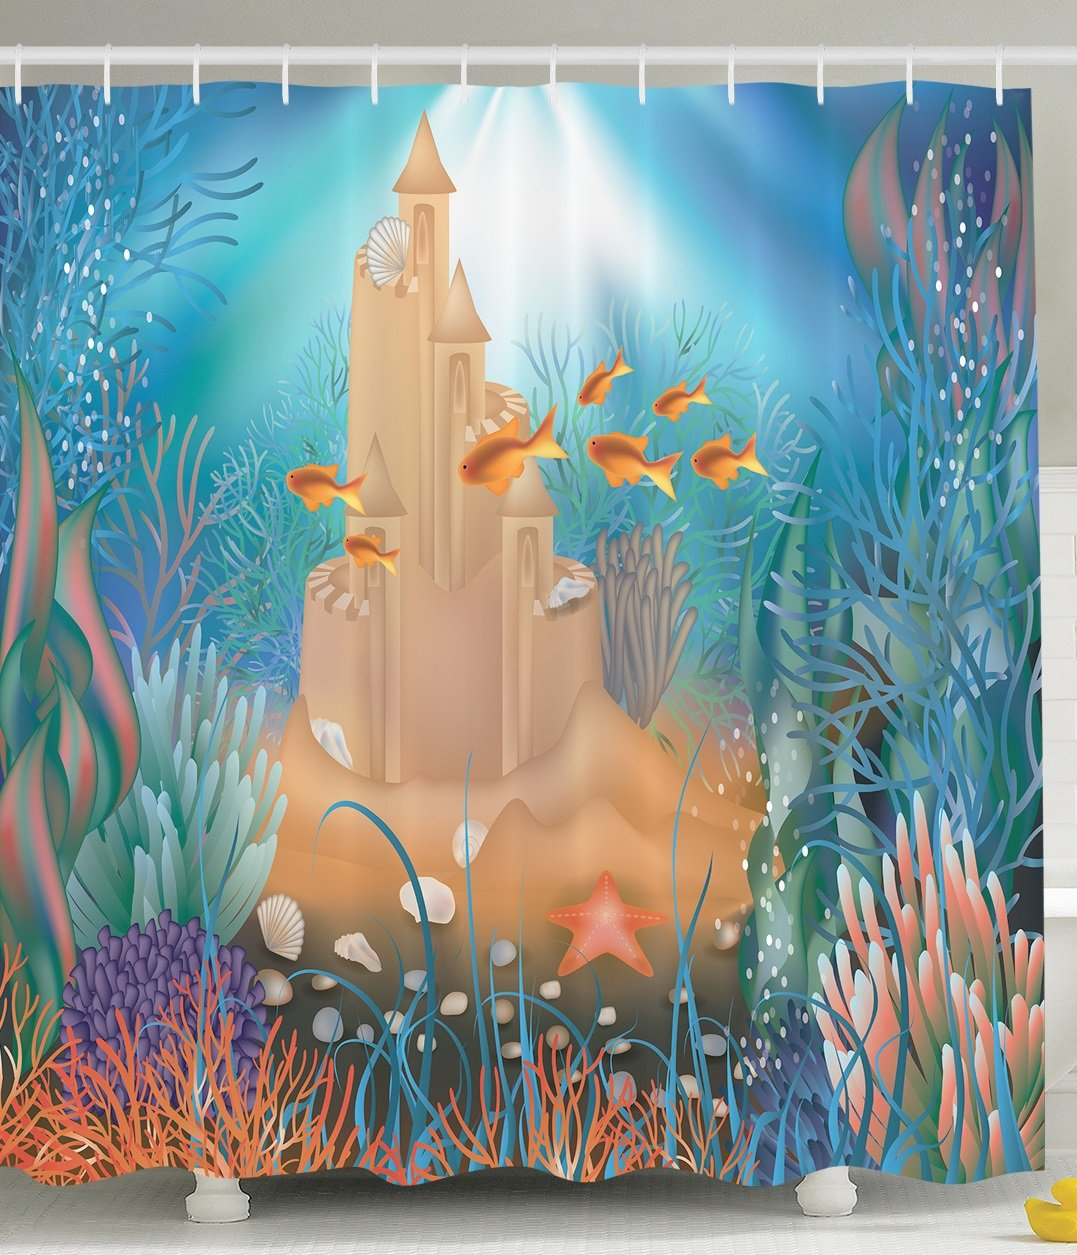 Fairy shower curtain - Amazon Com Kids Shower Curtain Nursery Decor By Ambesonne Fairy Sand Castle Underwater Dream World Sea Star Seashell Modern Art Tropical Fish Decorations